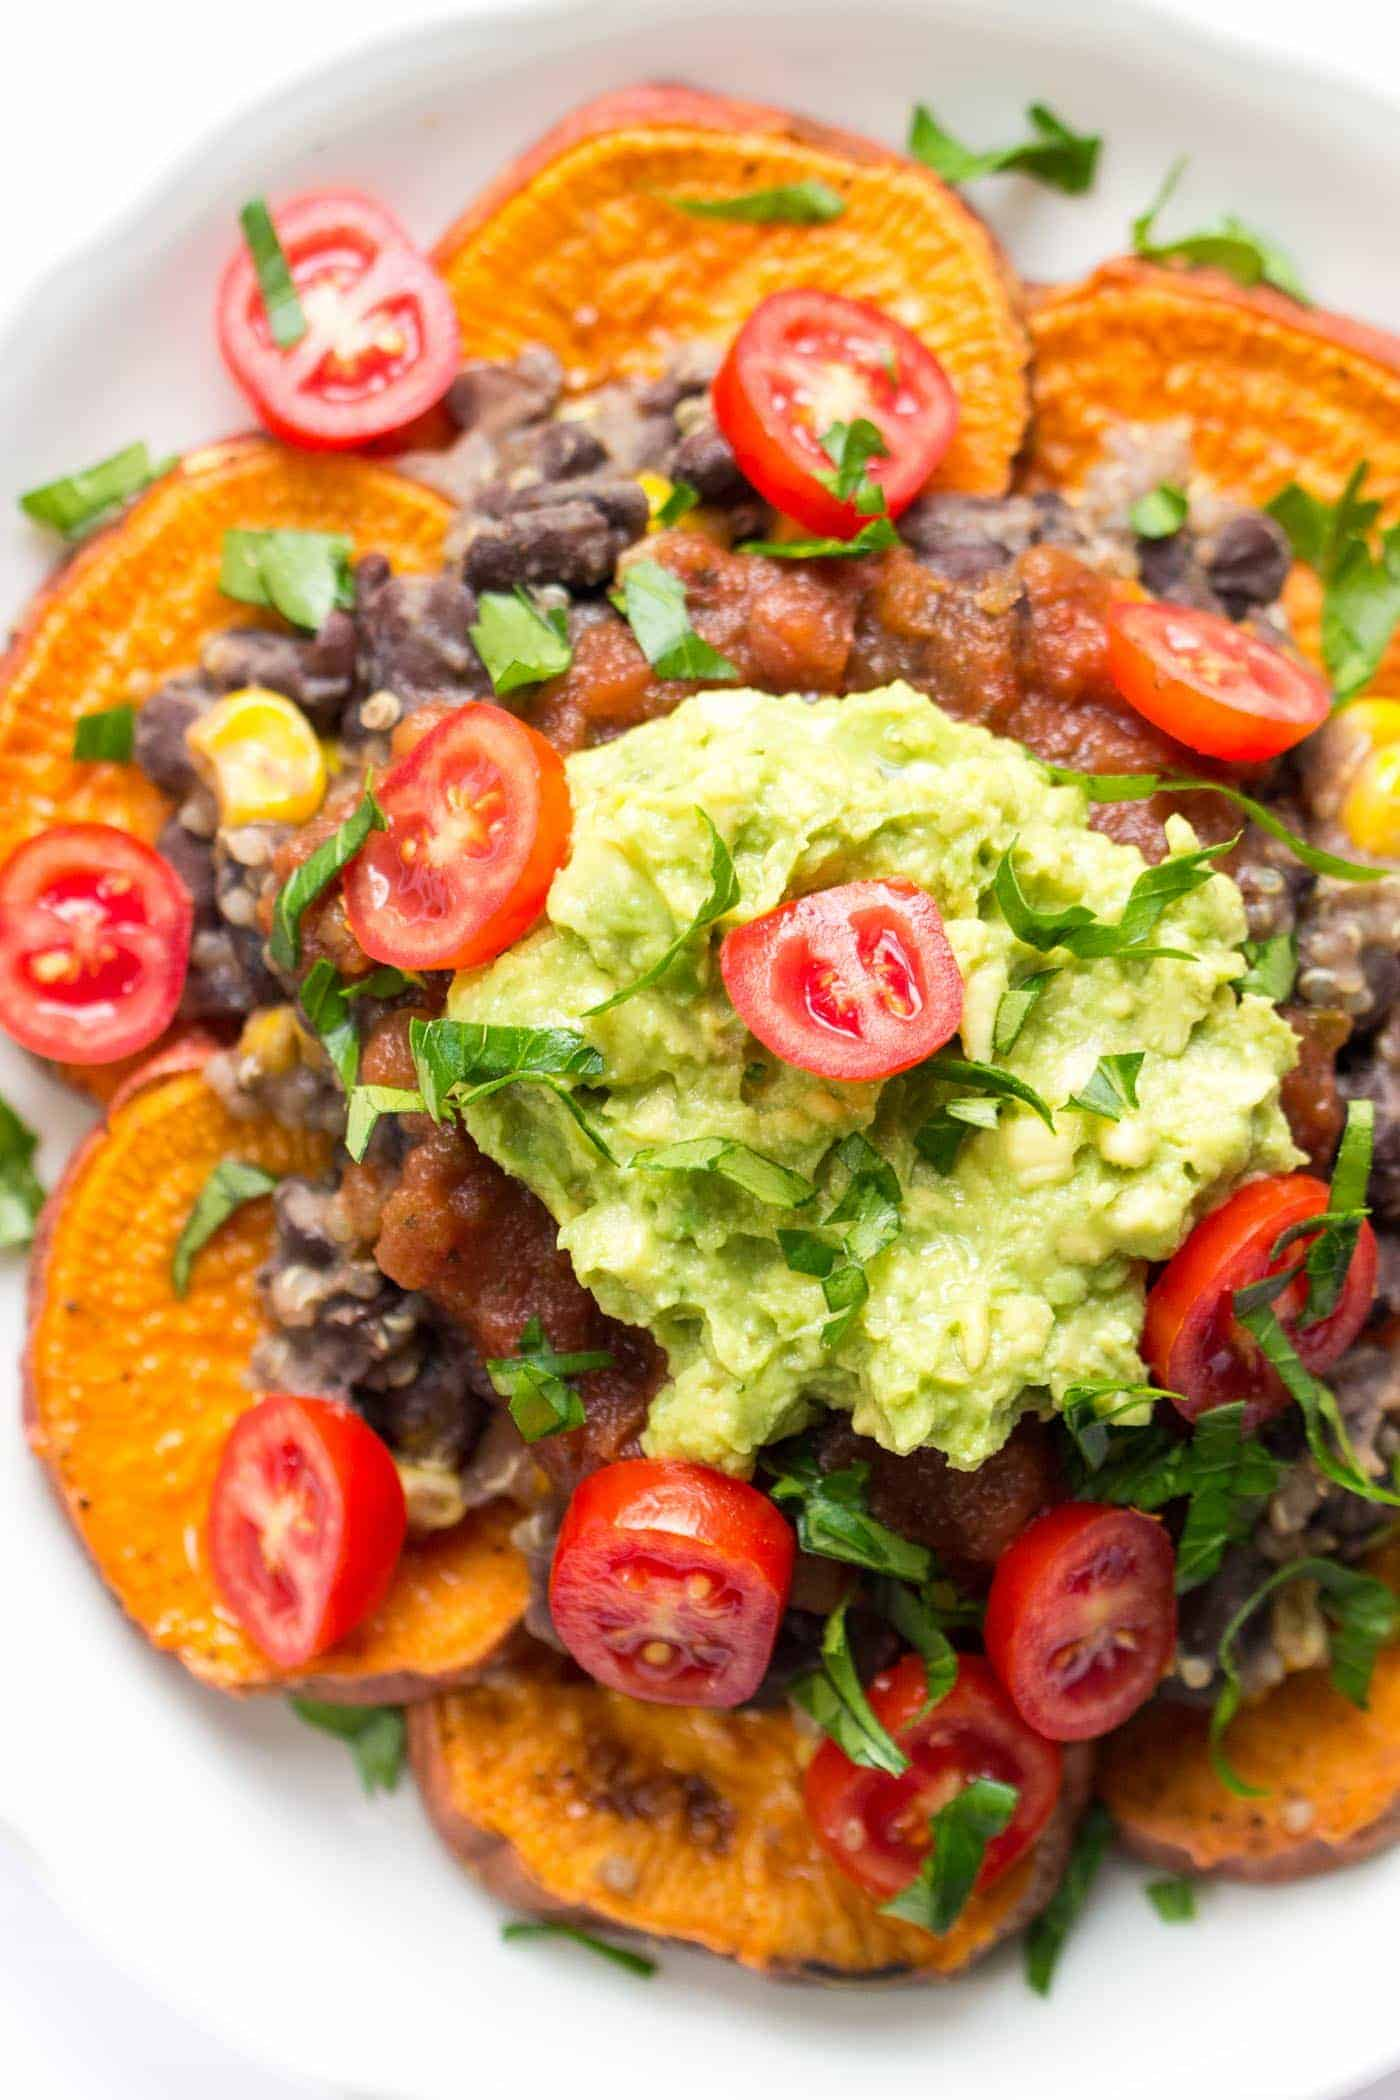 How to make nachos healthy >> swap tortilla chips for sweet potatoes! These quinoa nachos are the bomb!